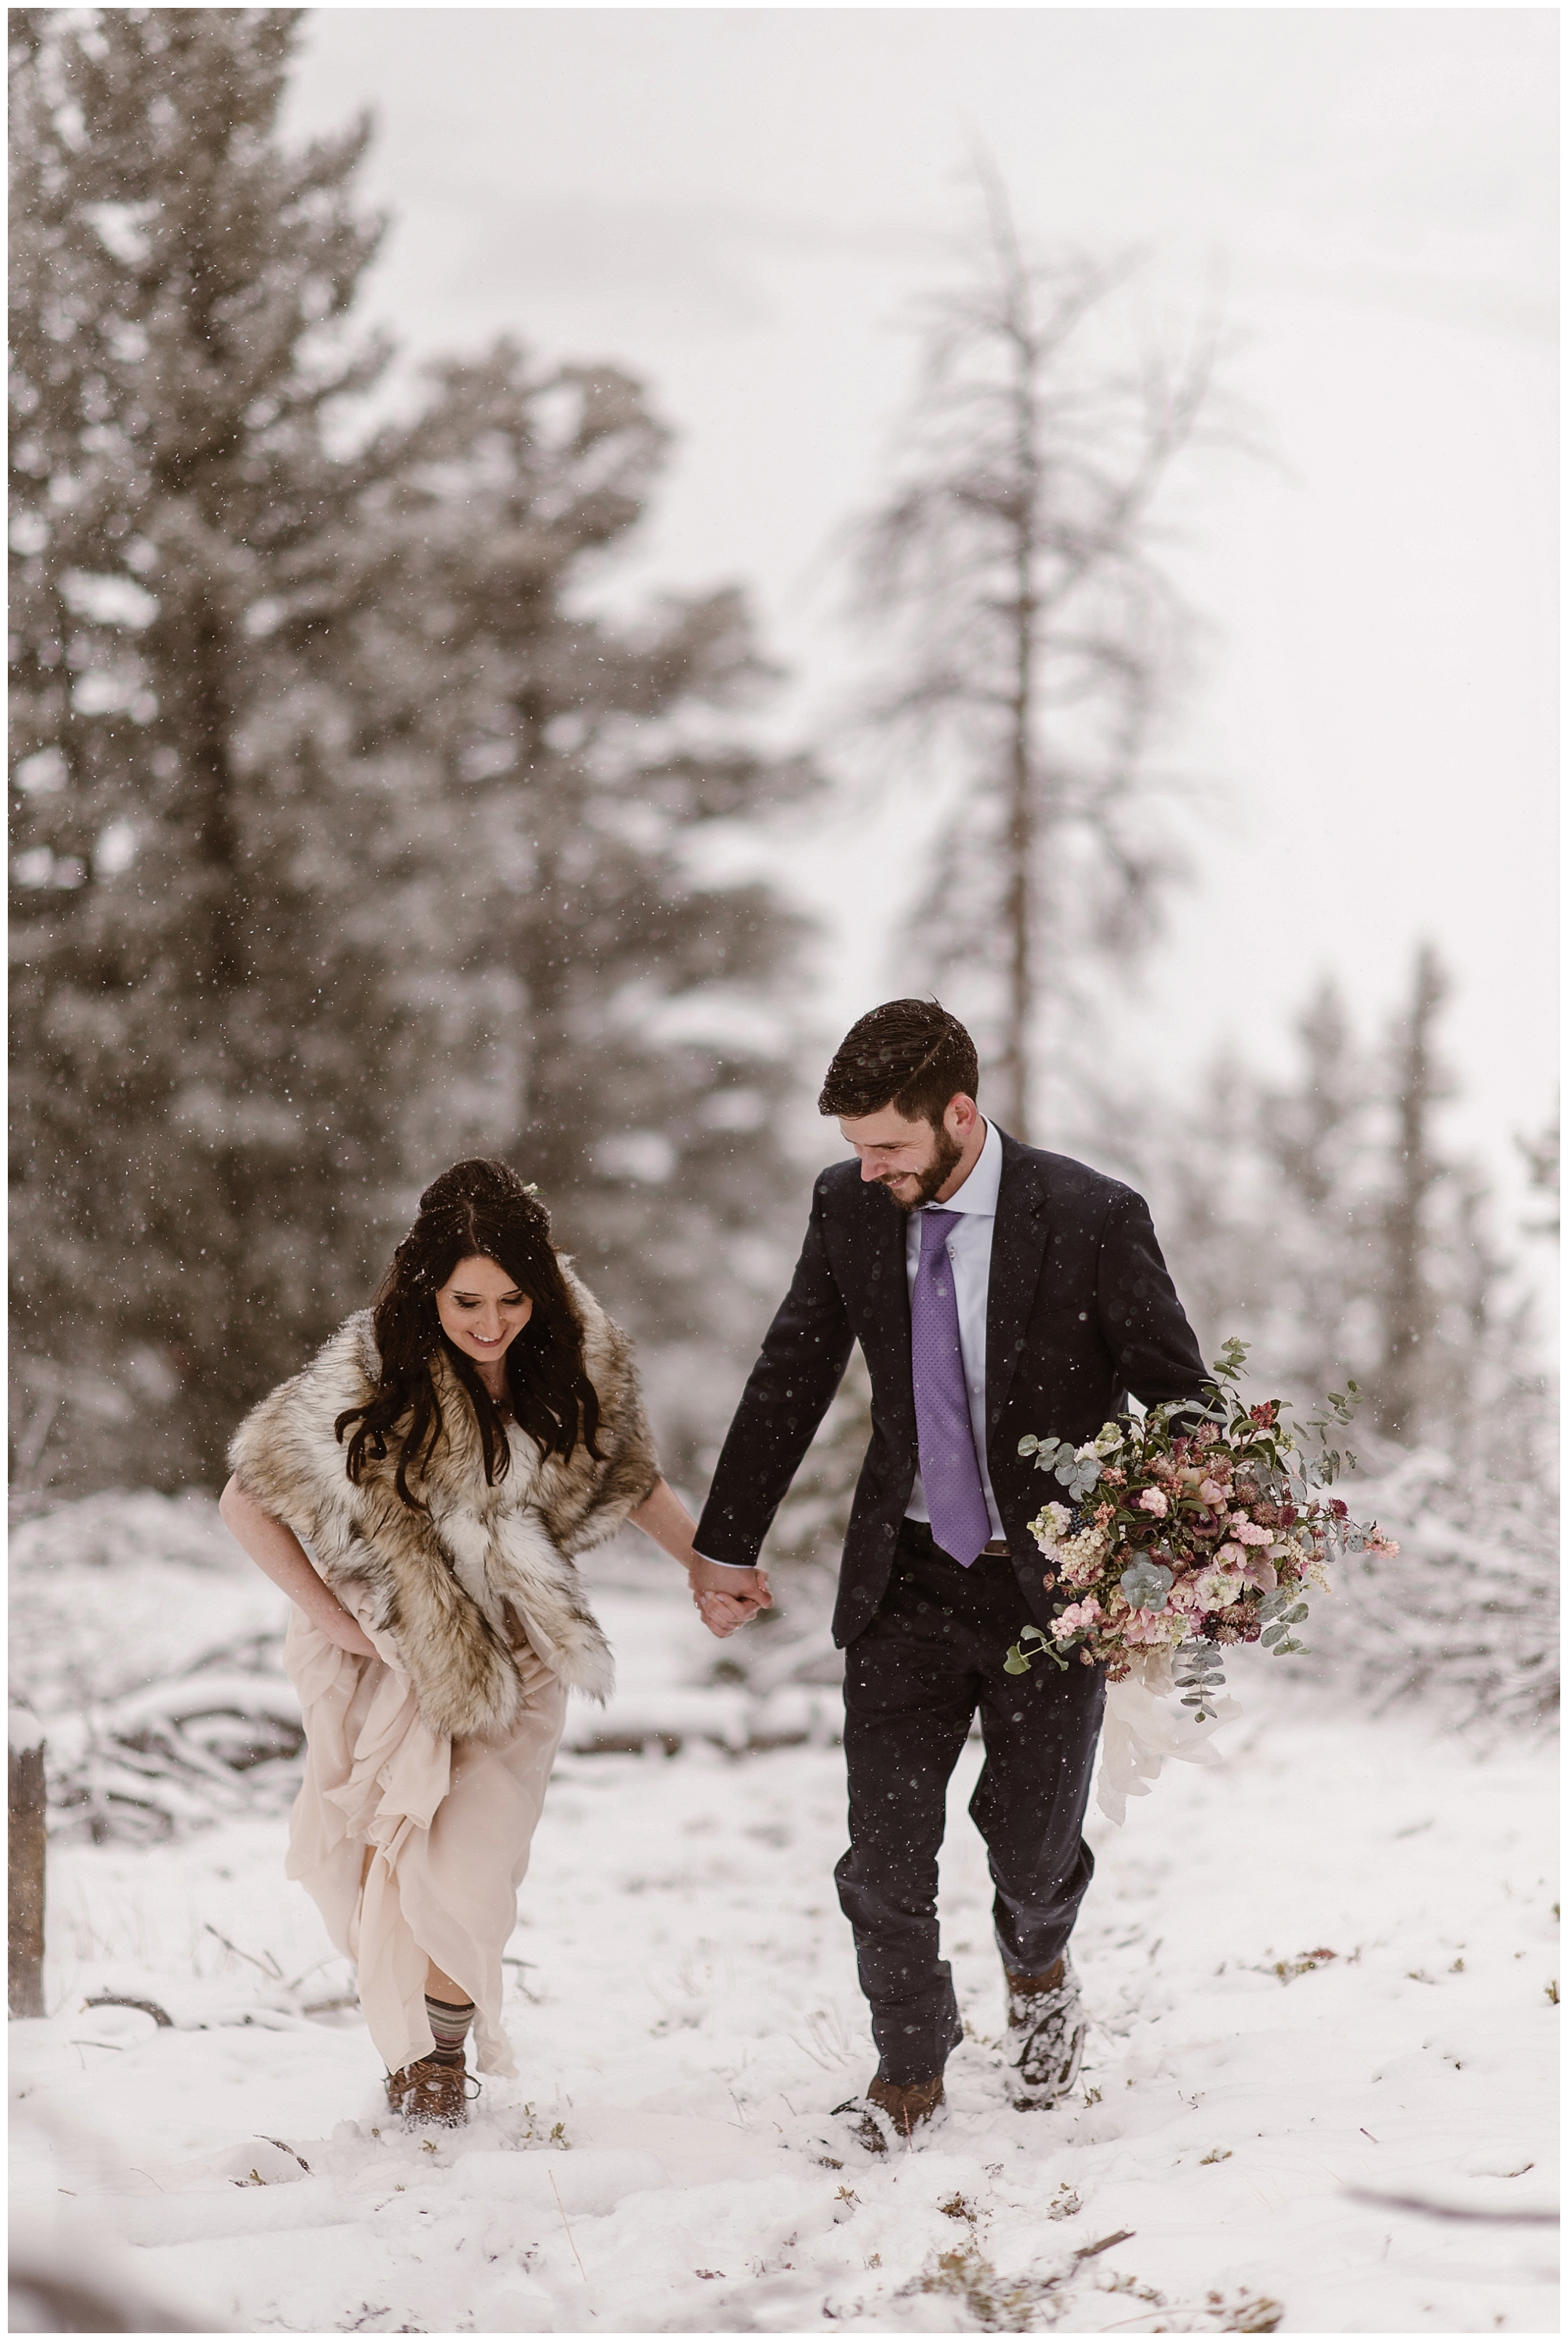 Marlayna and Austin eloped in a scene that looked like a snow globe. Snow fell during their winter elopement at Sapphire Point in Dillon, Colorado. Photo by Adventure Instead, Maddie Mae Elopement Photographers.